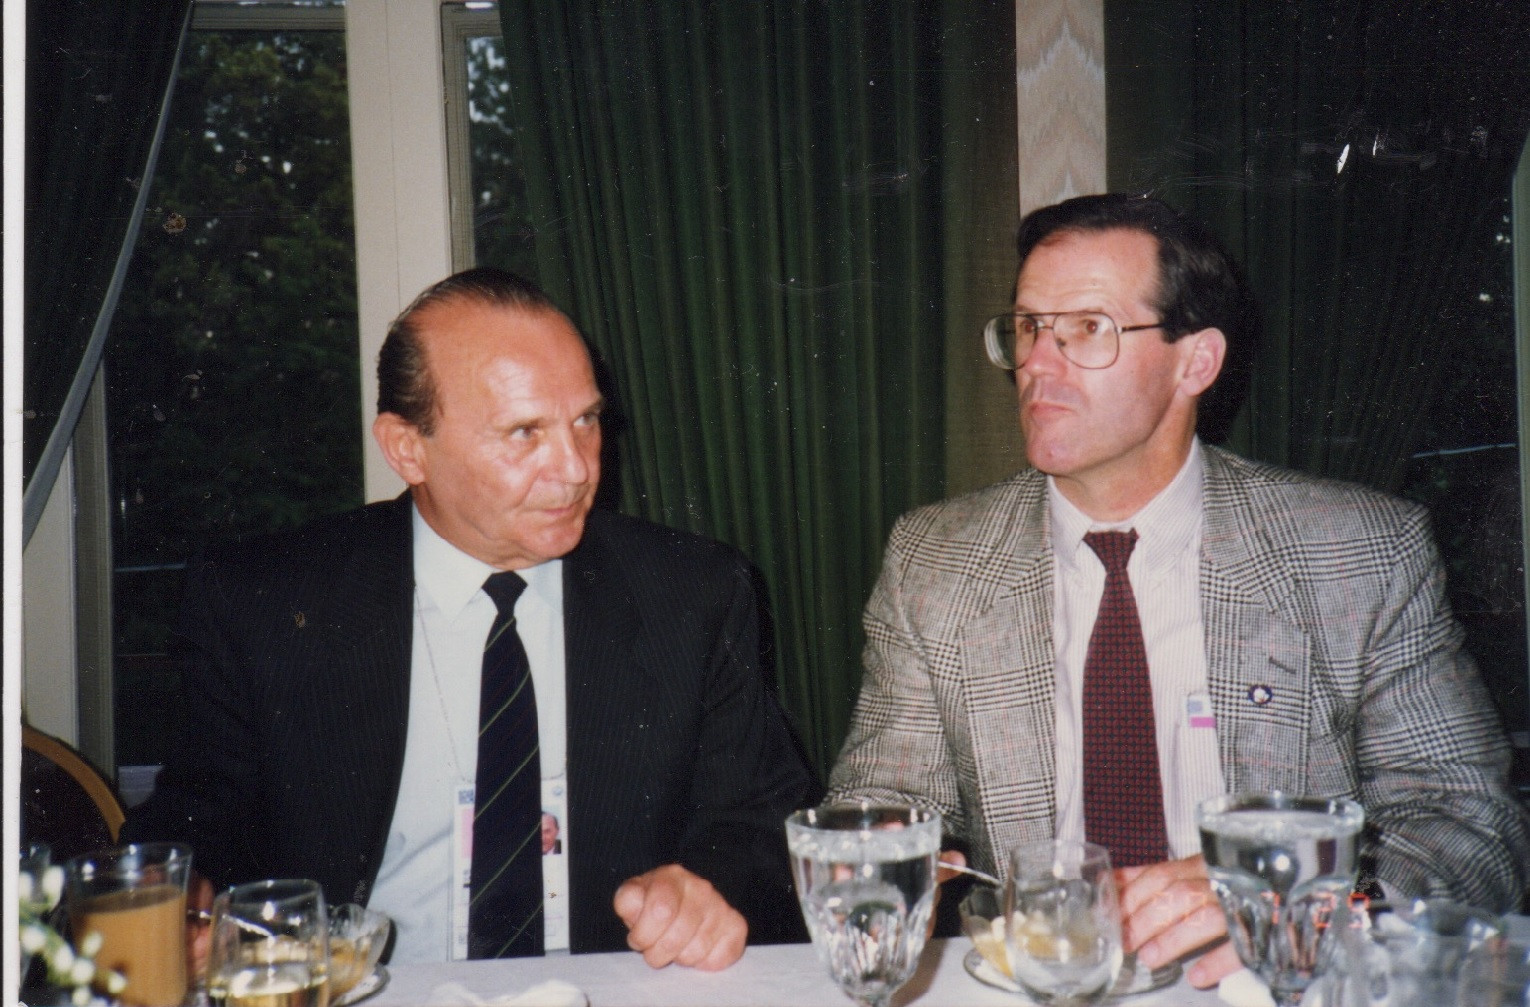 Jim Schmitz (right), has had plenty of run-ins with former IWF President Tamás Aján, but acknowledged Aján had also done a lot of good work for the sport ©Getty Images